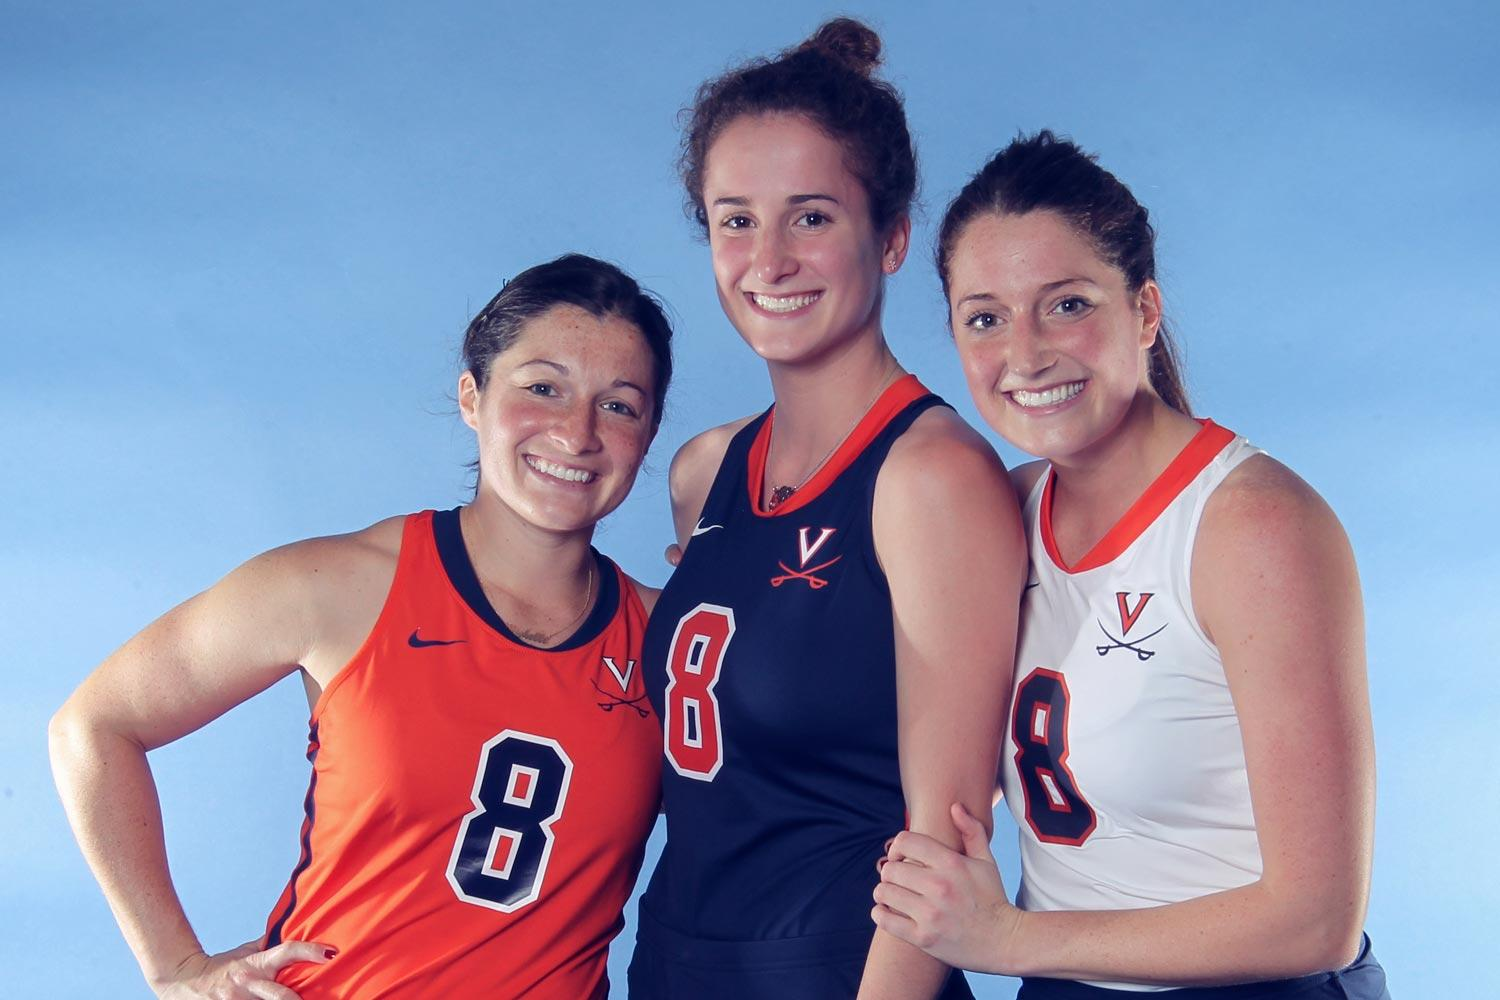 Former Cavalier field hockey stars (from left) Michelle, Tara and Carissa Vitesse have all played for the U.S. national team, but only Michelle and Tara are on the roster for the 2018 World Cup, which begins Saturday.